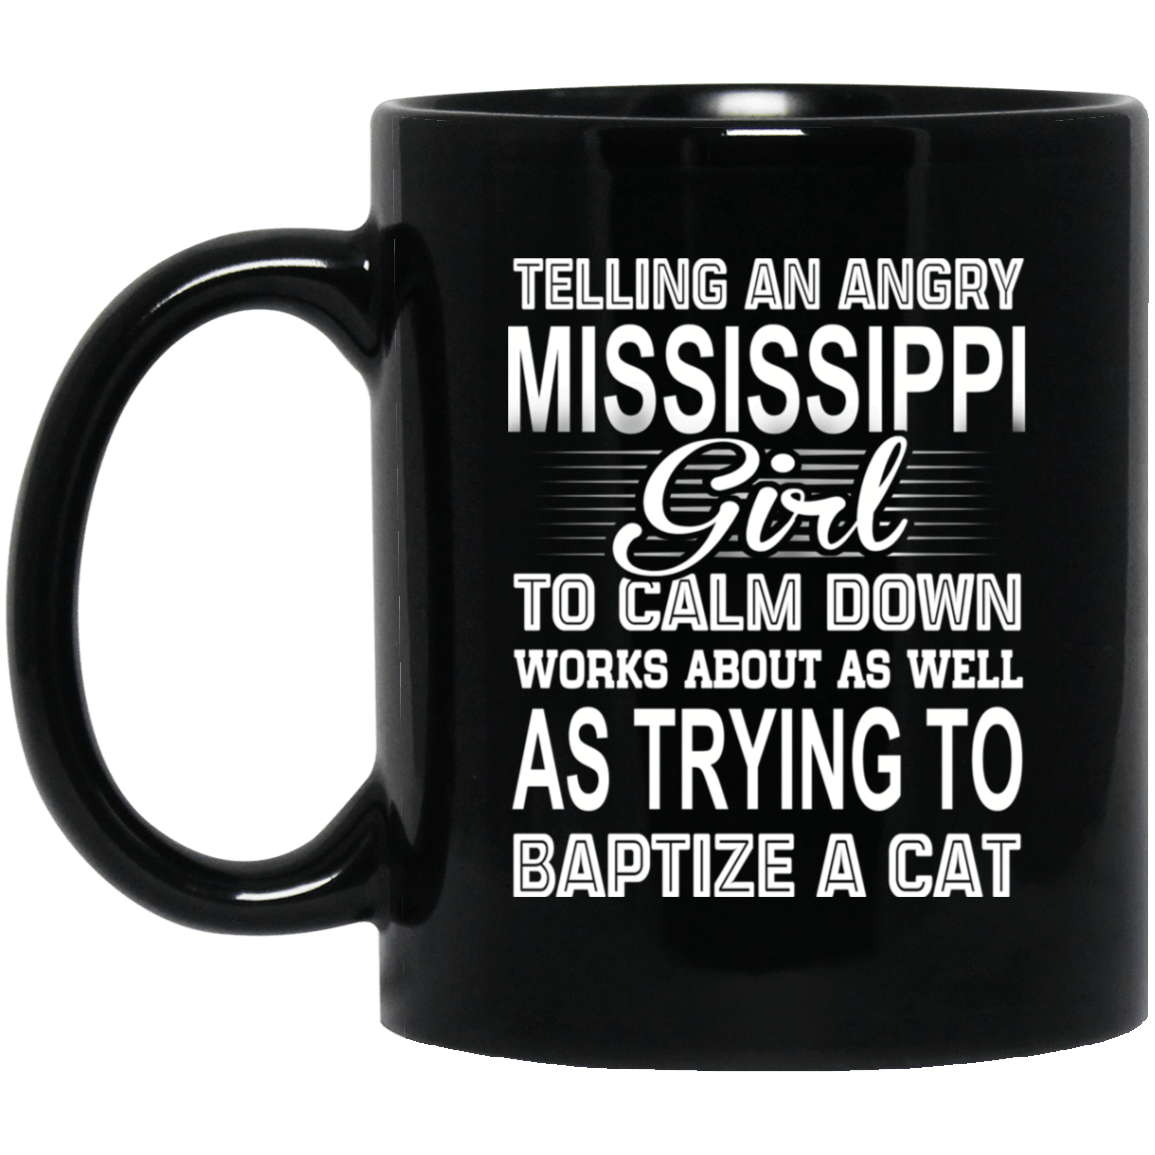 Telling An Angry Mississippi Girl To Calm Down Works About As Well As Trying To Baptize A Cat Mug 1065-10181-76151629-49307 - Tee Ript